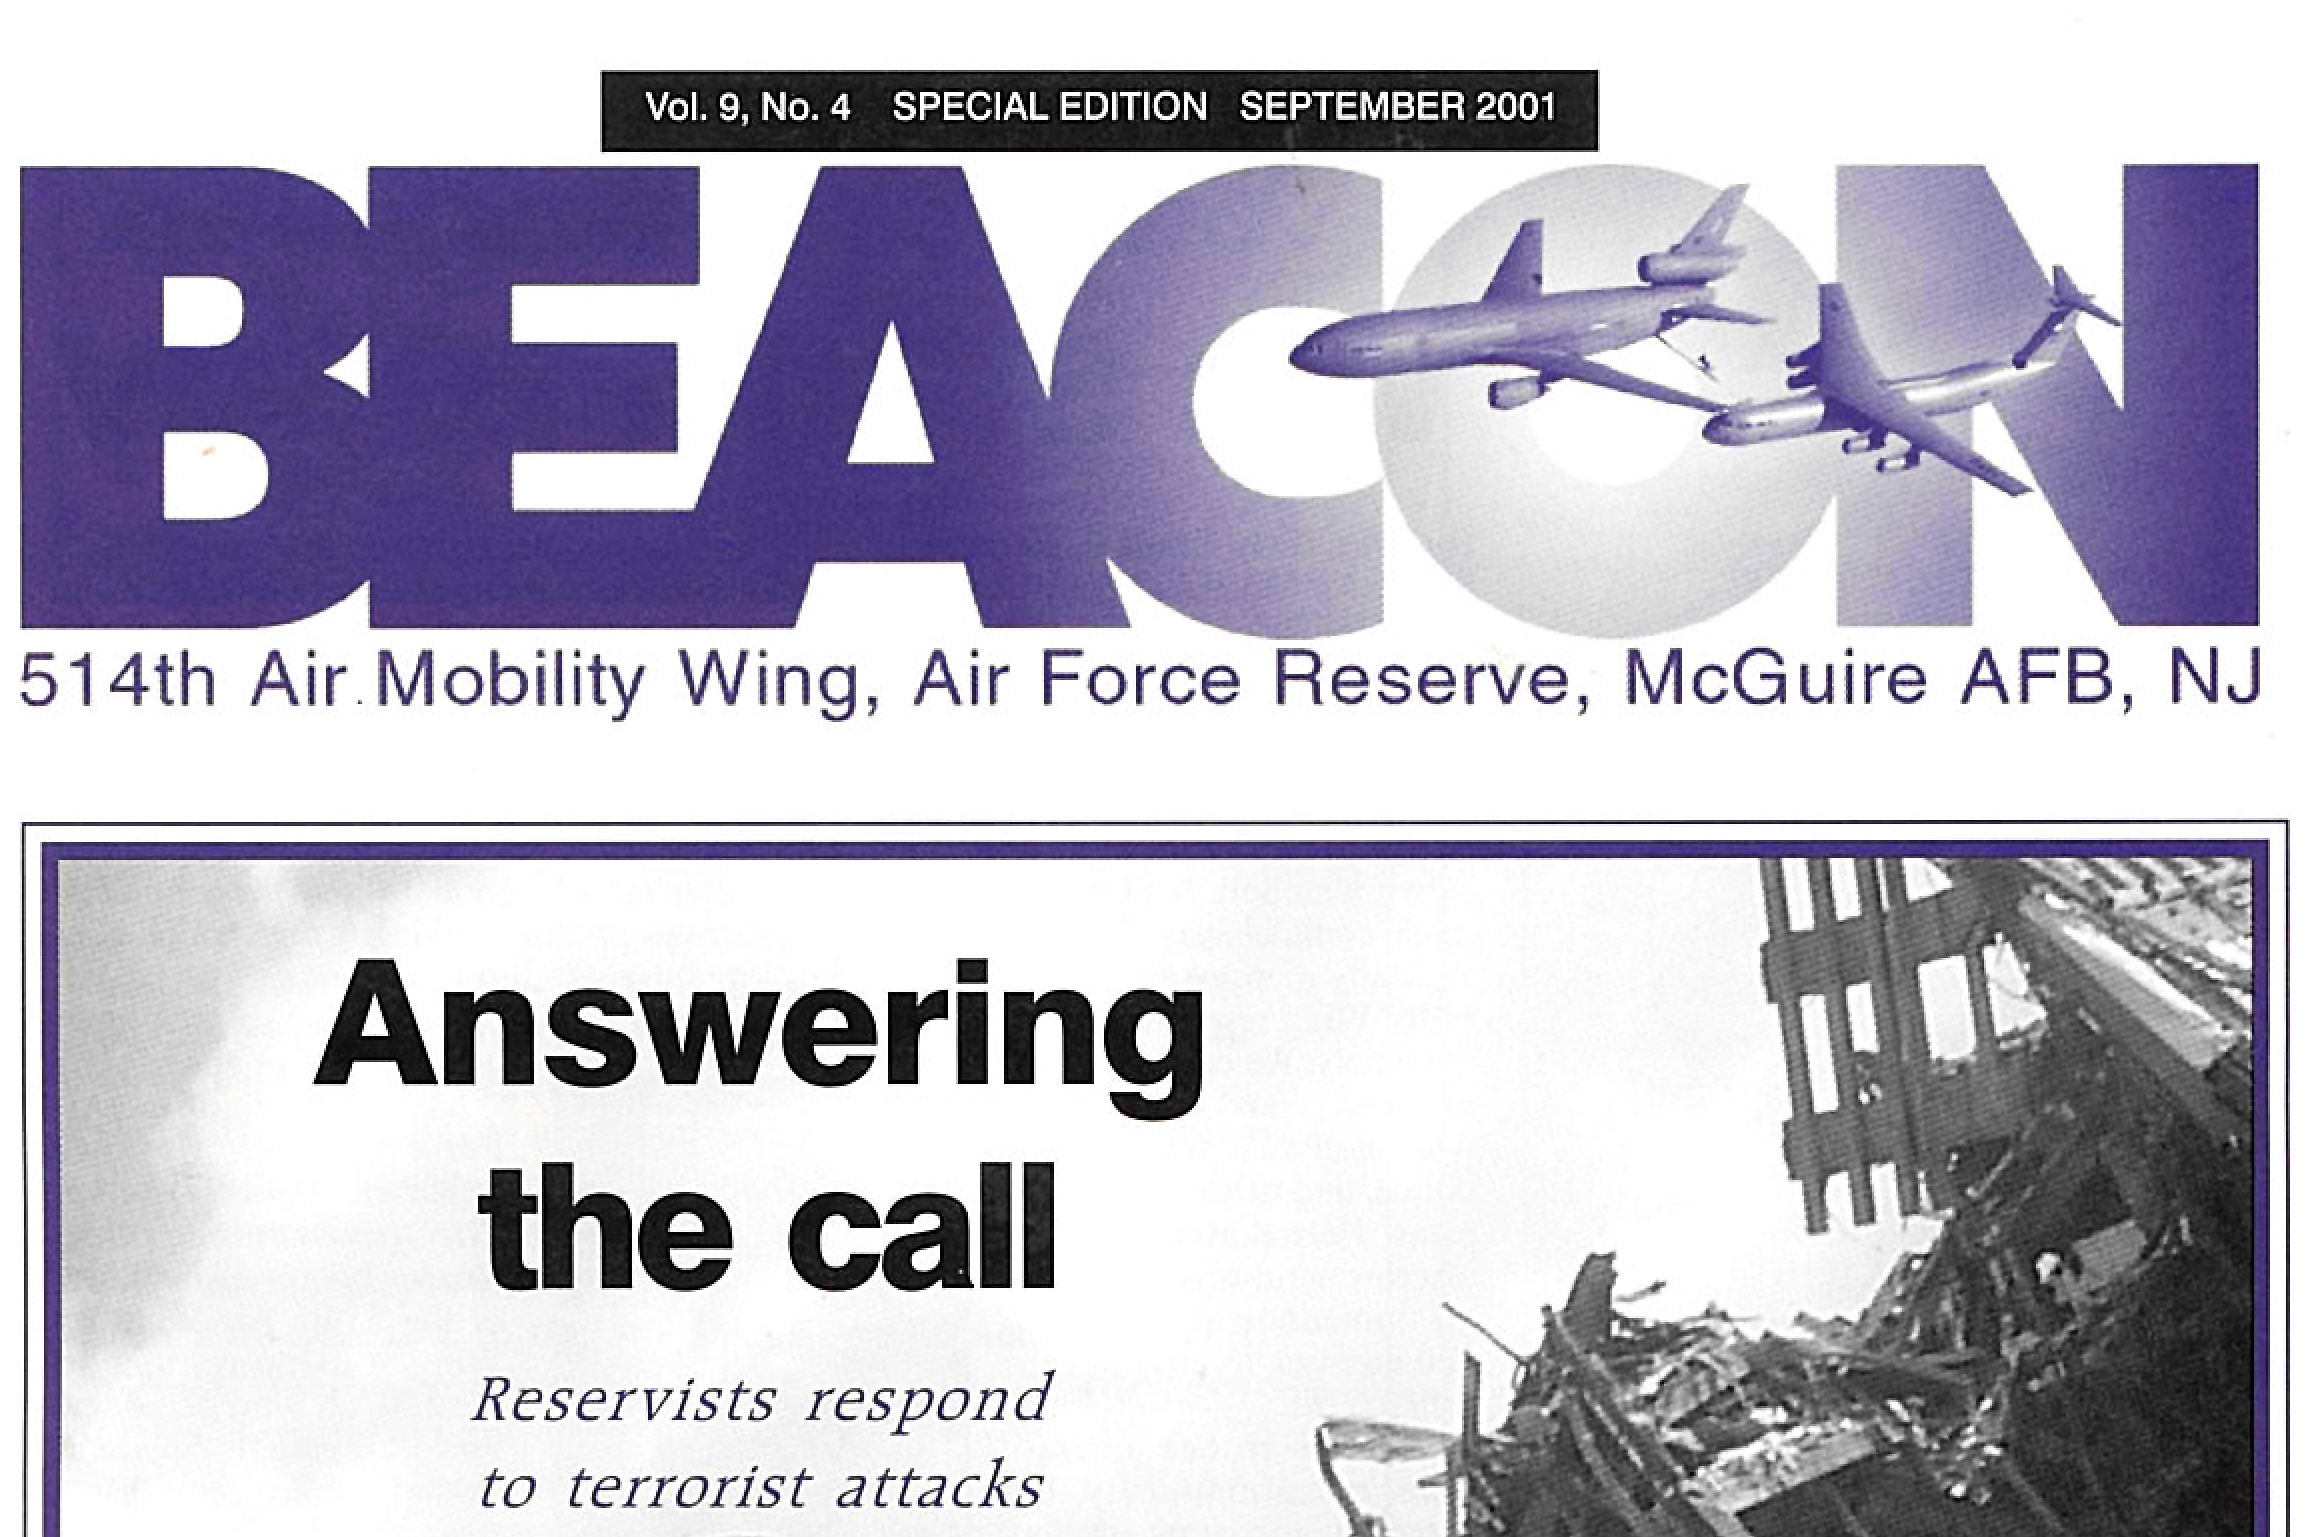 Beacon magazine covers Freedom Wing Airmen during 9/11